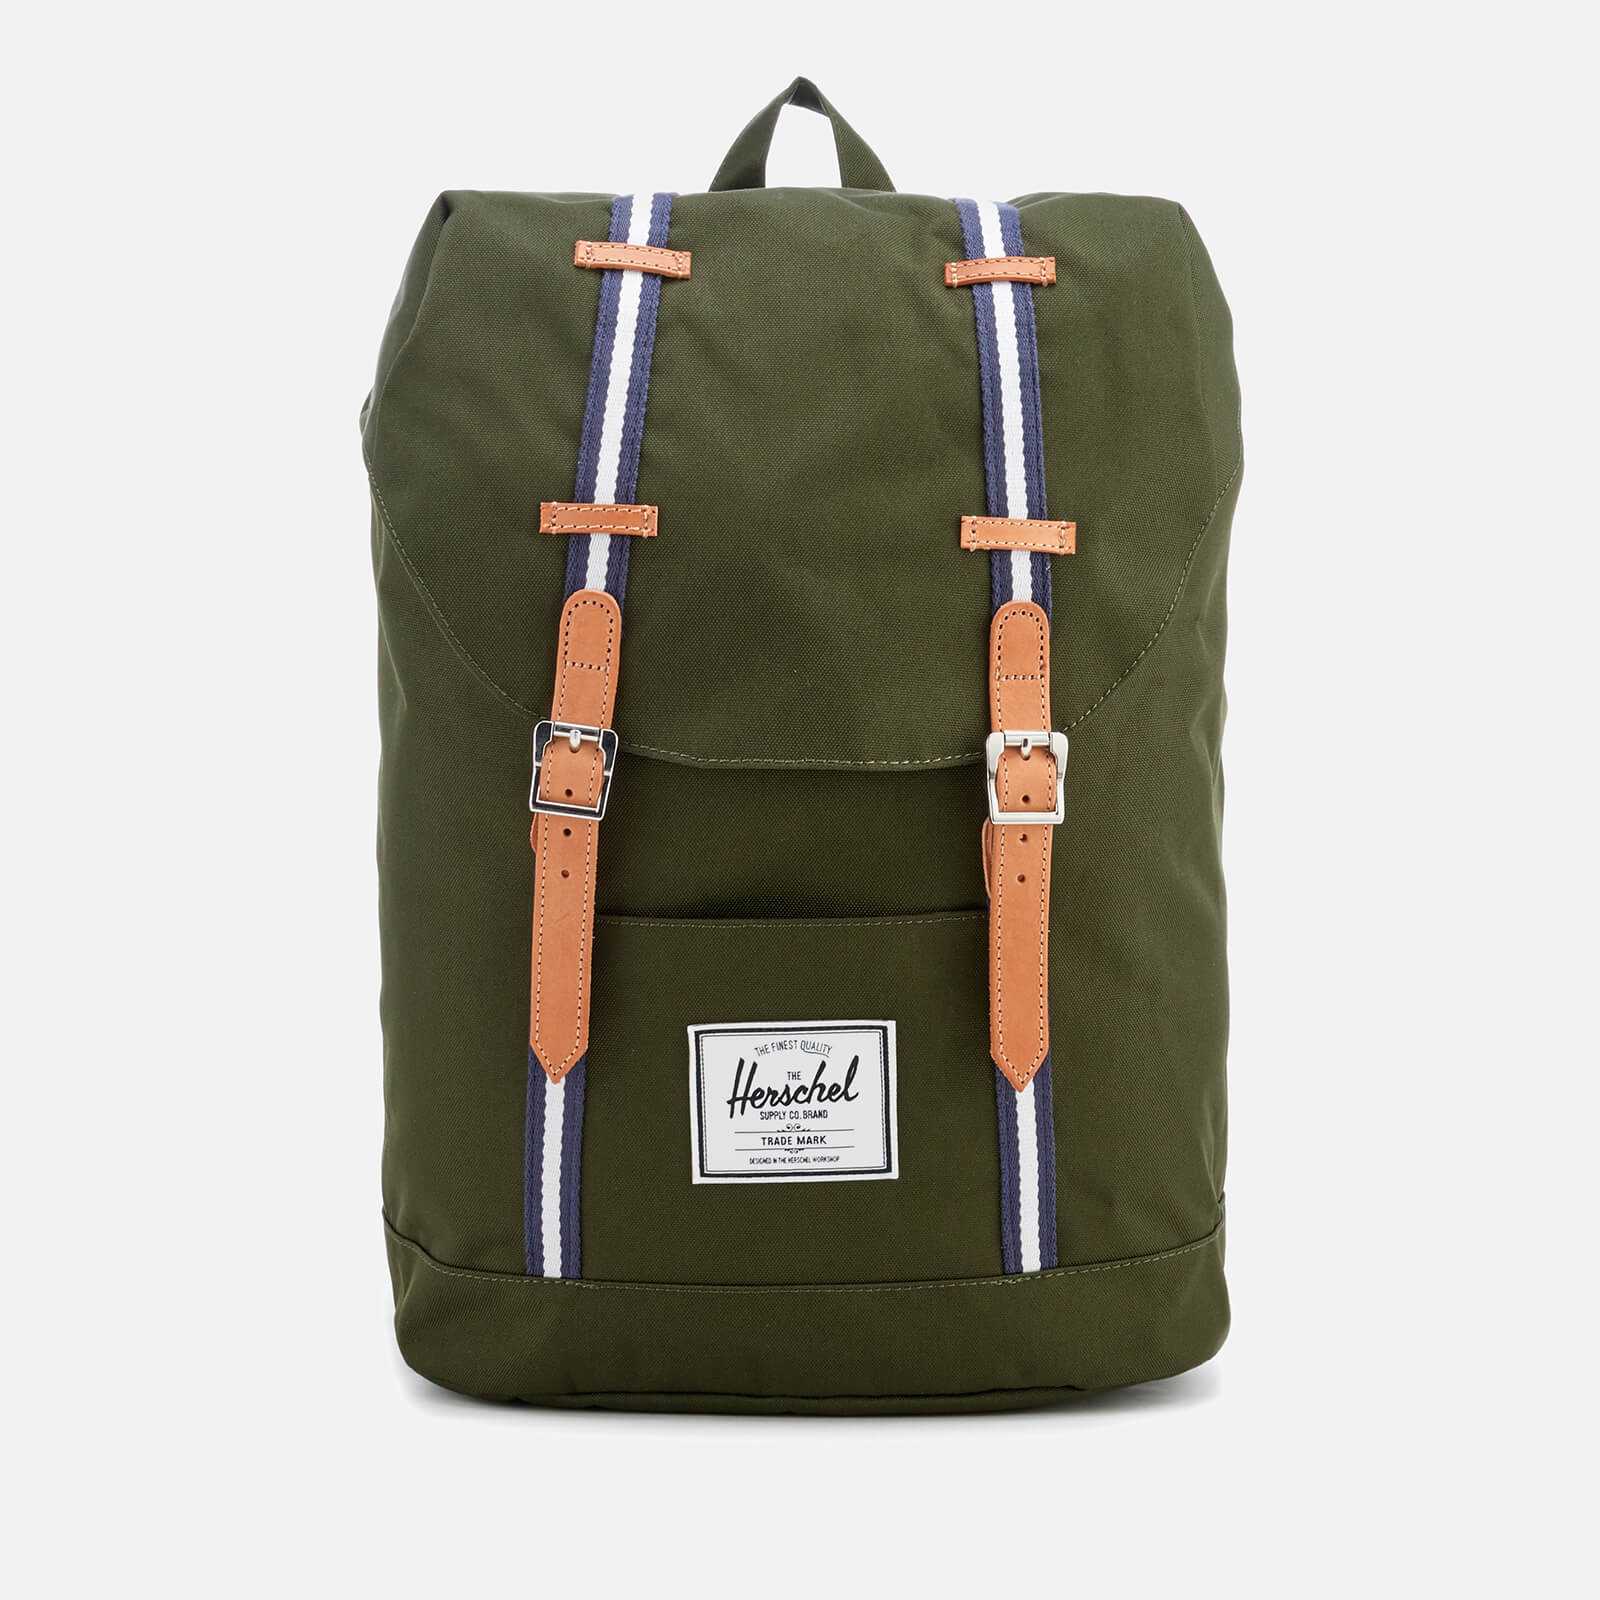 37f311cb98 ... Herschel Supply Co. Men s Retreat Backpack - Forest Green Veggie Tan  Leather